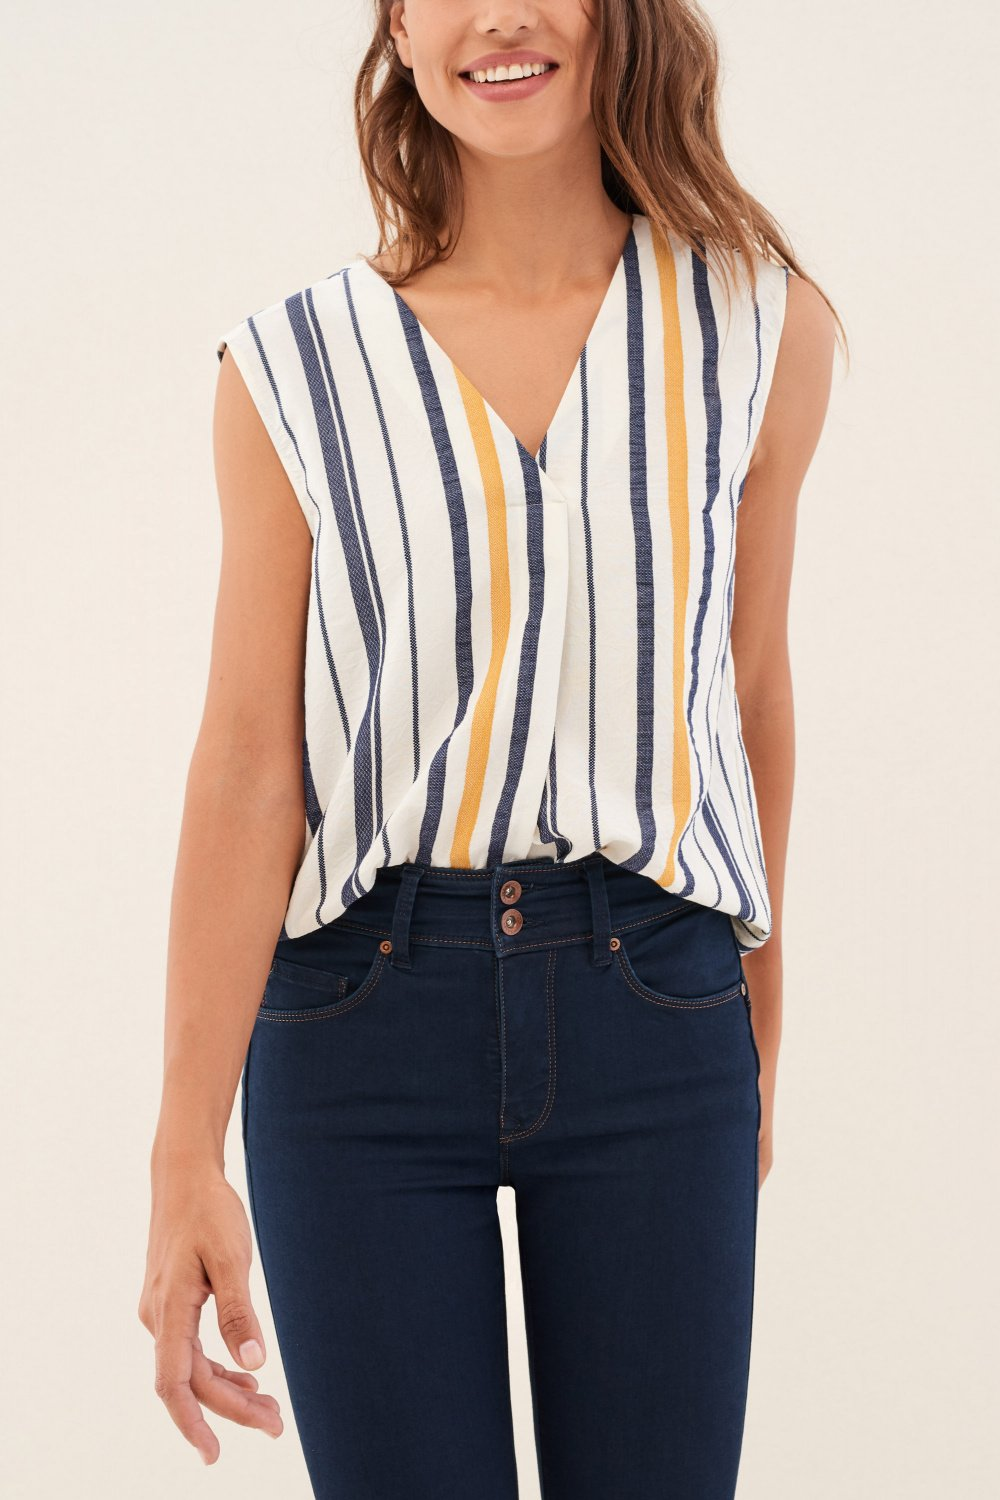 Striped blouse - Salsa